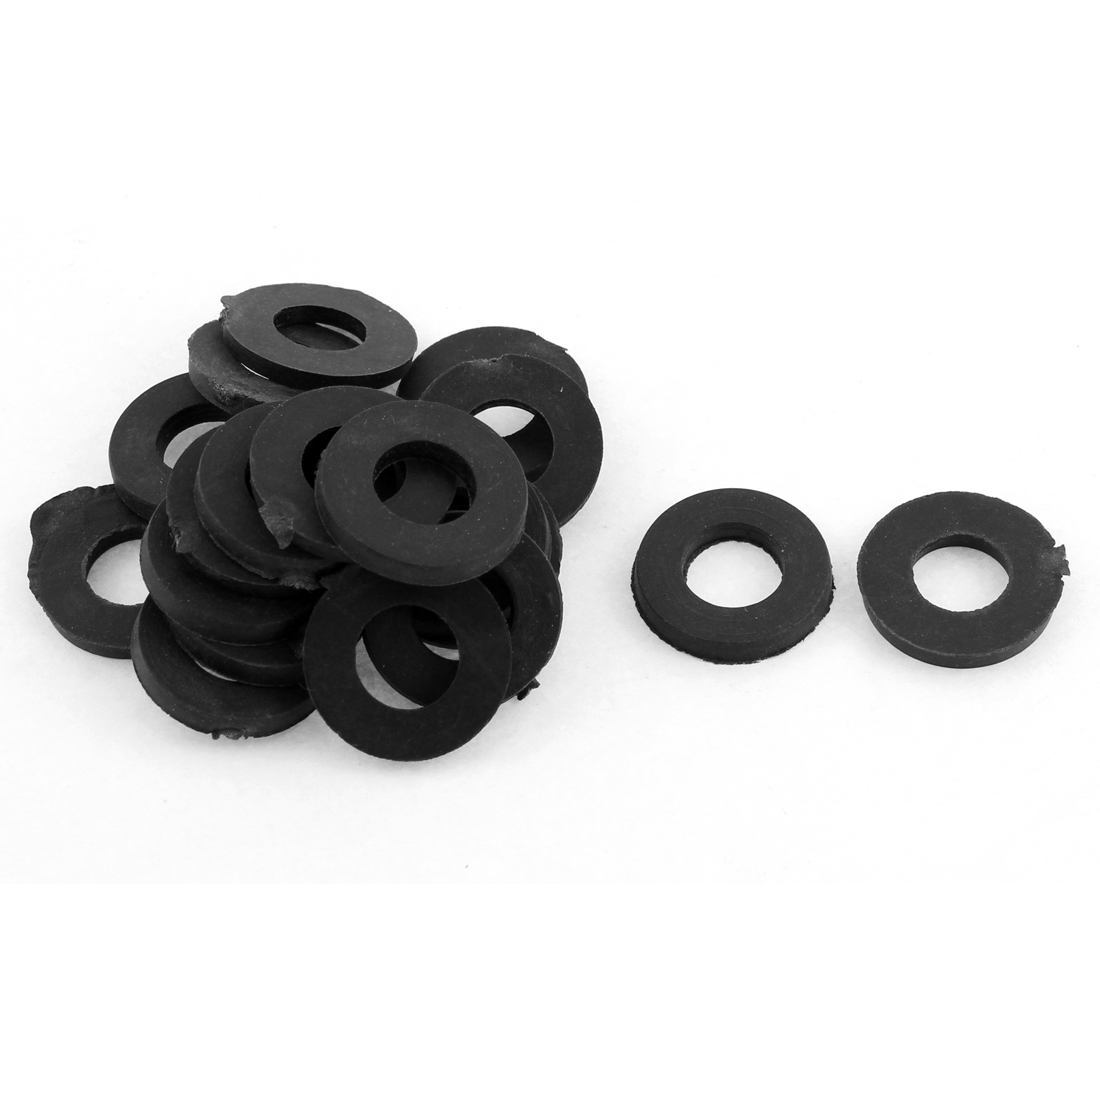 20PCS 19x10x3mm Black Rubber O Ring Seal Water Pipe Gasket Tube Hose Connector Sealing